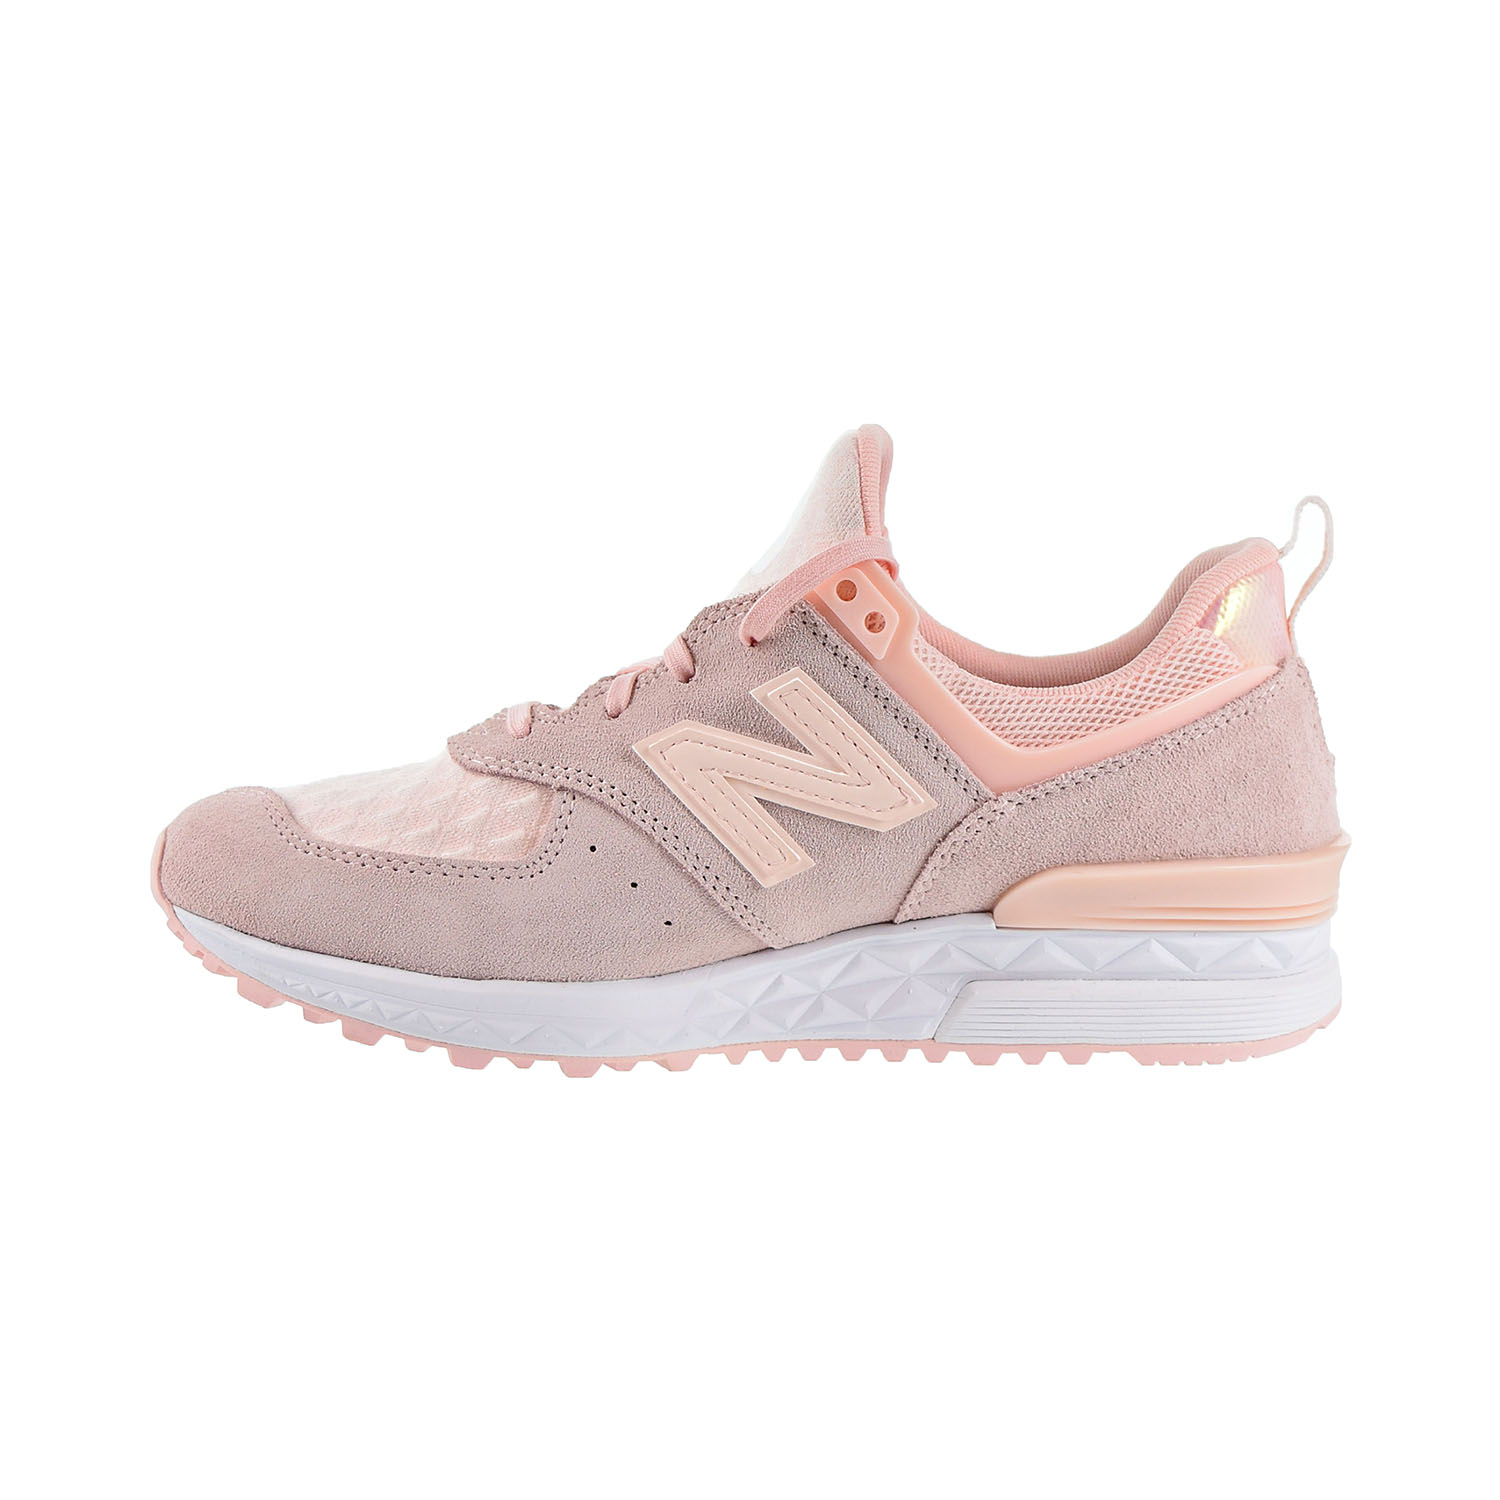 Details about New Balance 574 Women's Shoes White Pink WS574SNC